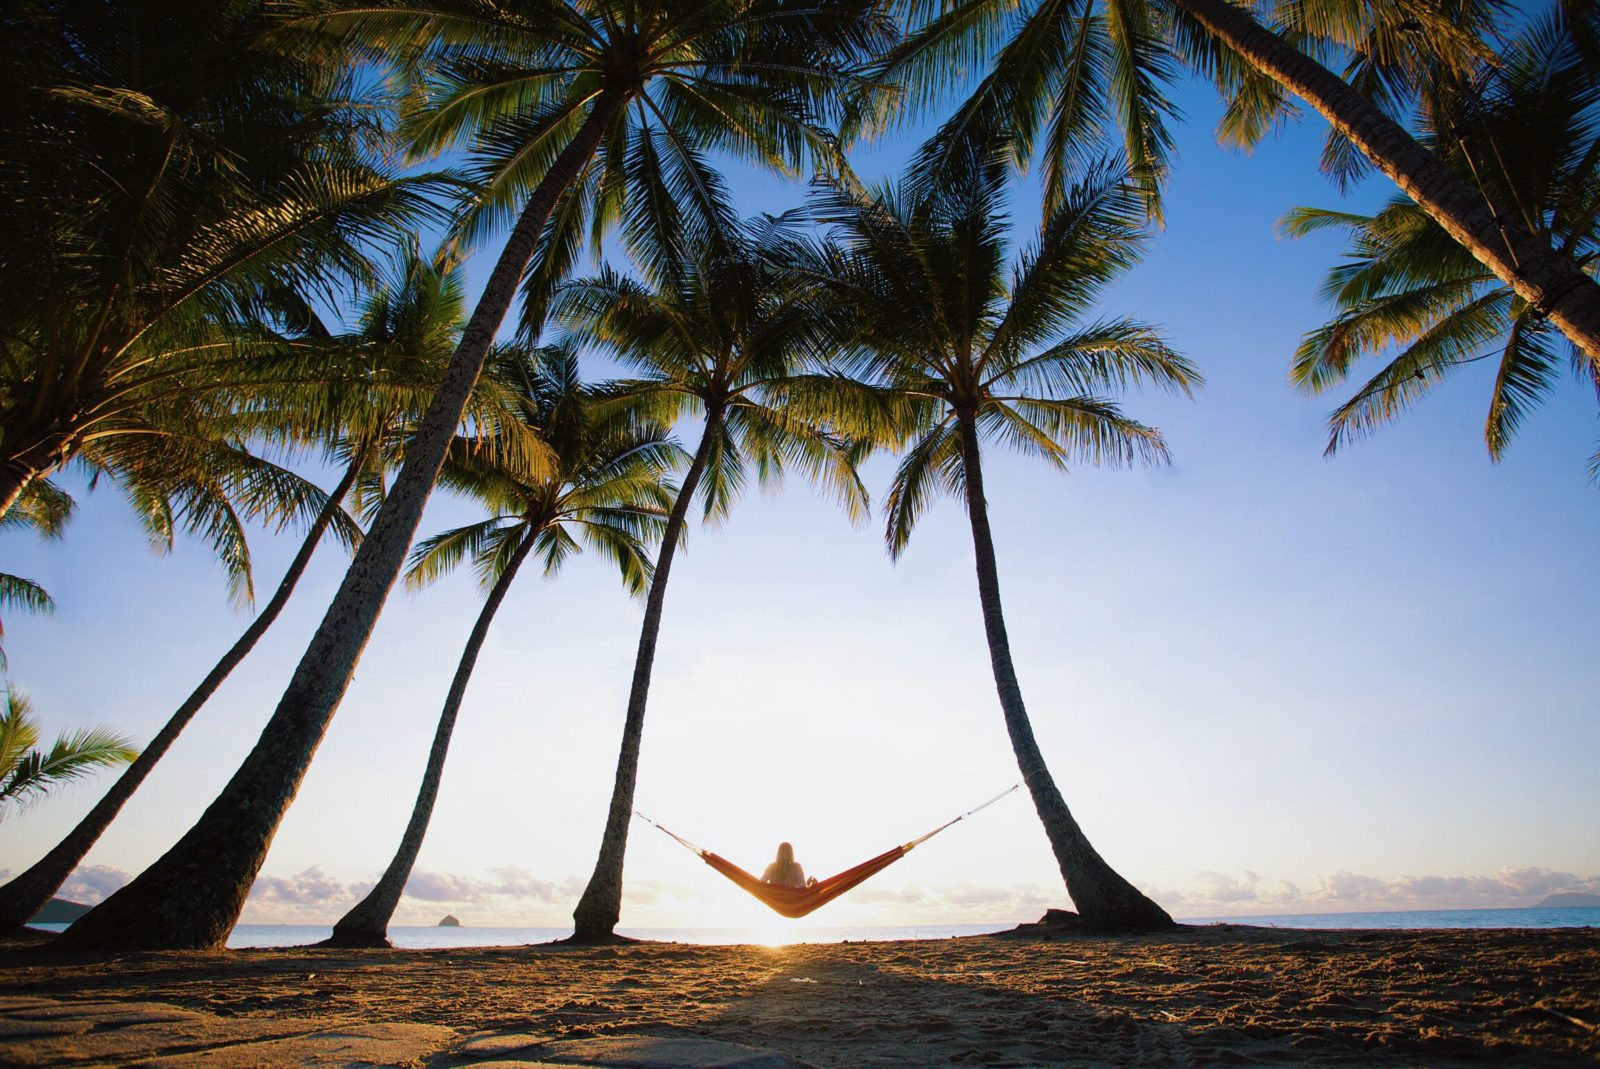 Sunrise hammock swinging at Palm Cove